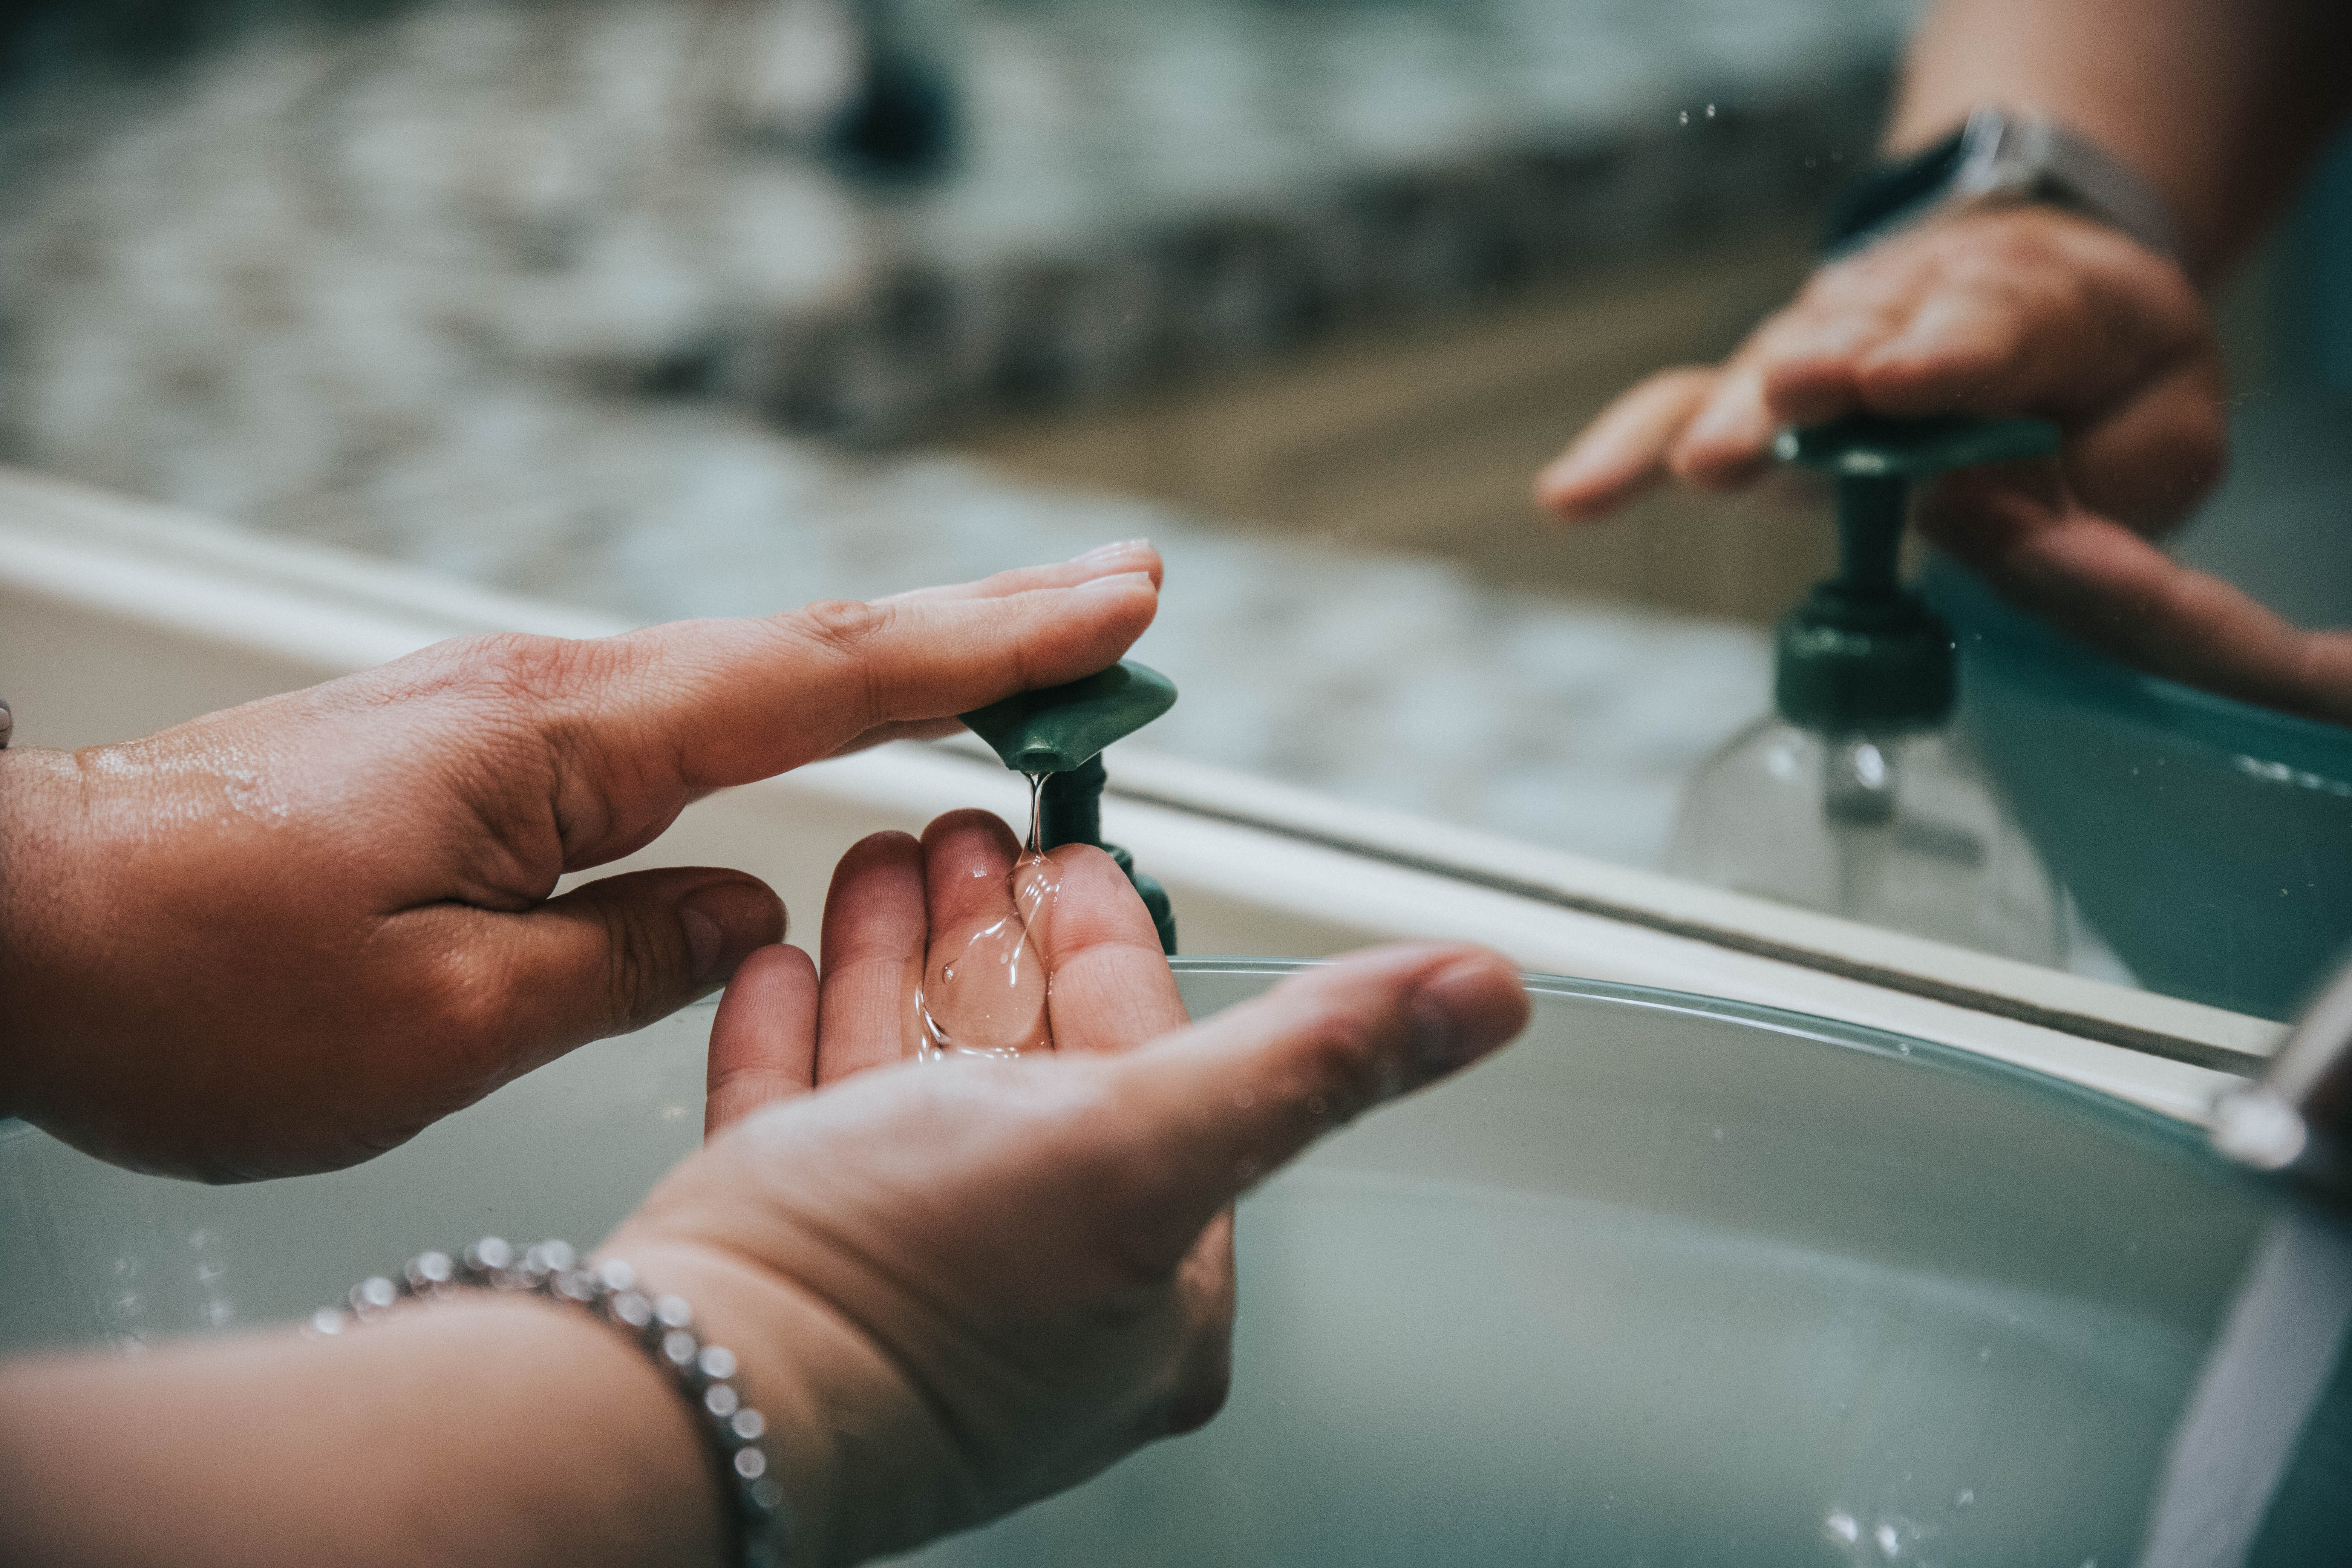 Man washing hands. Photo by Jason Jarrach on Unsplash.